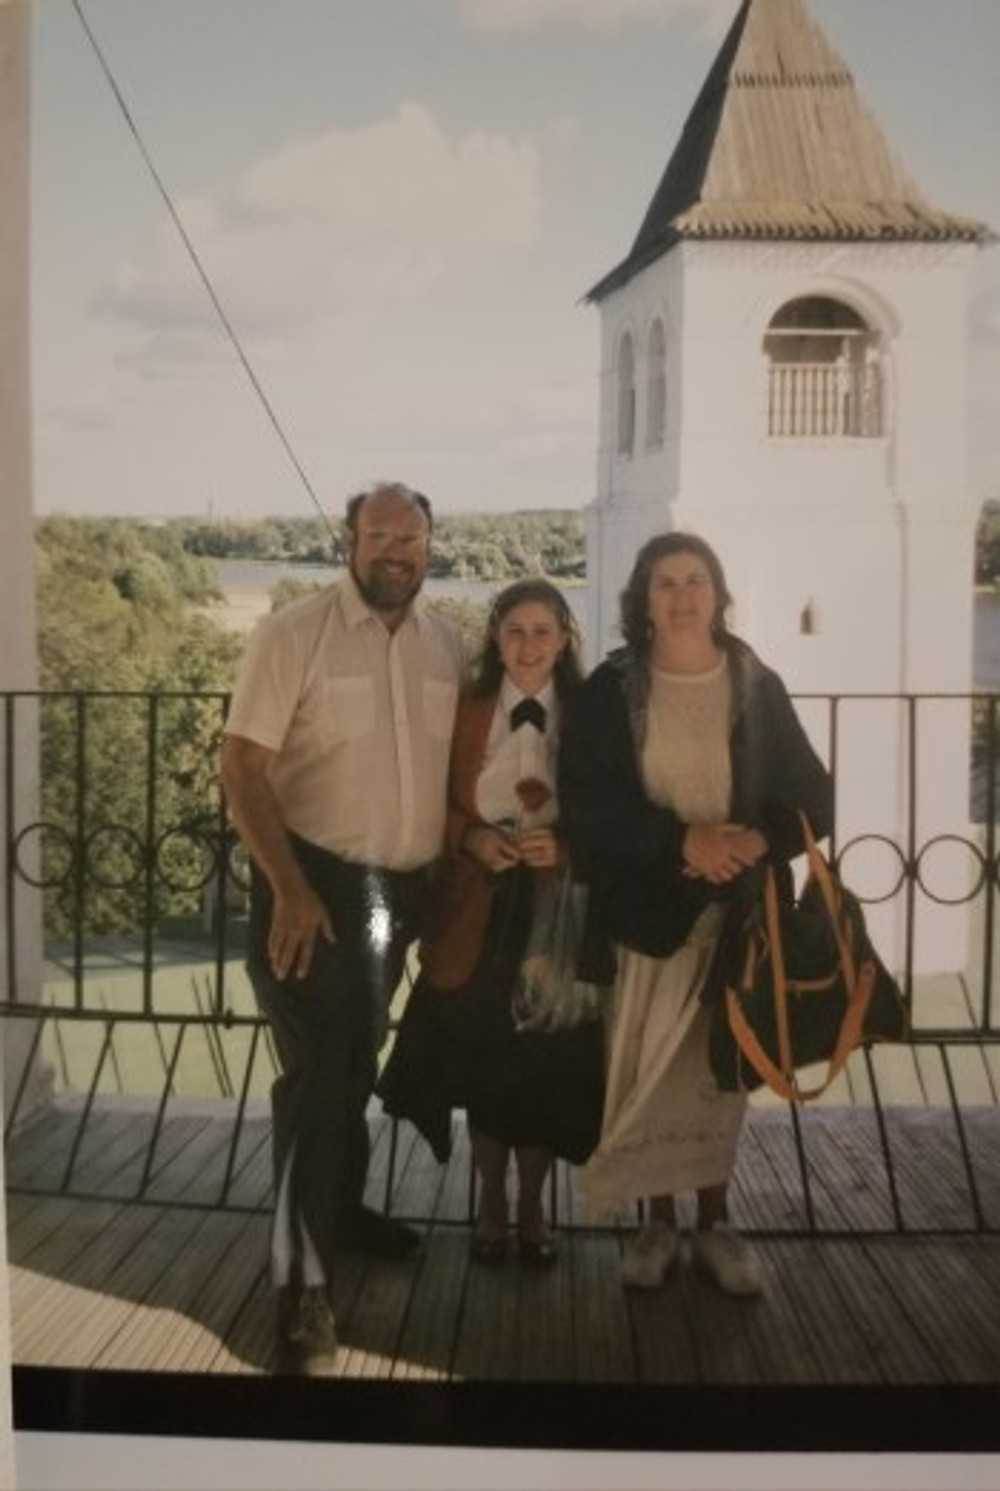 With my parents in Russia, 1998.